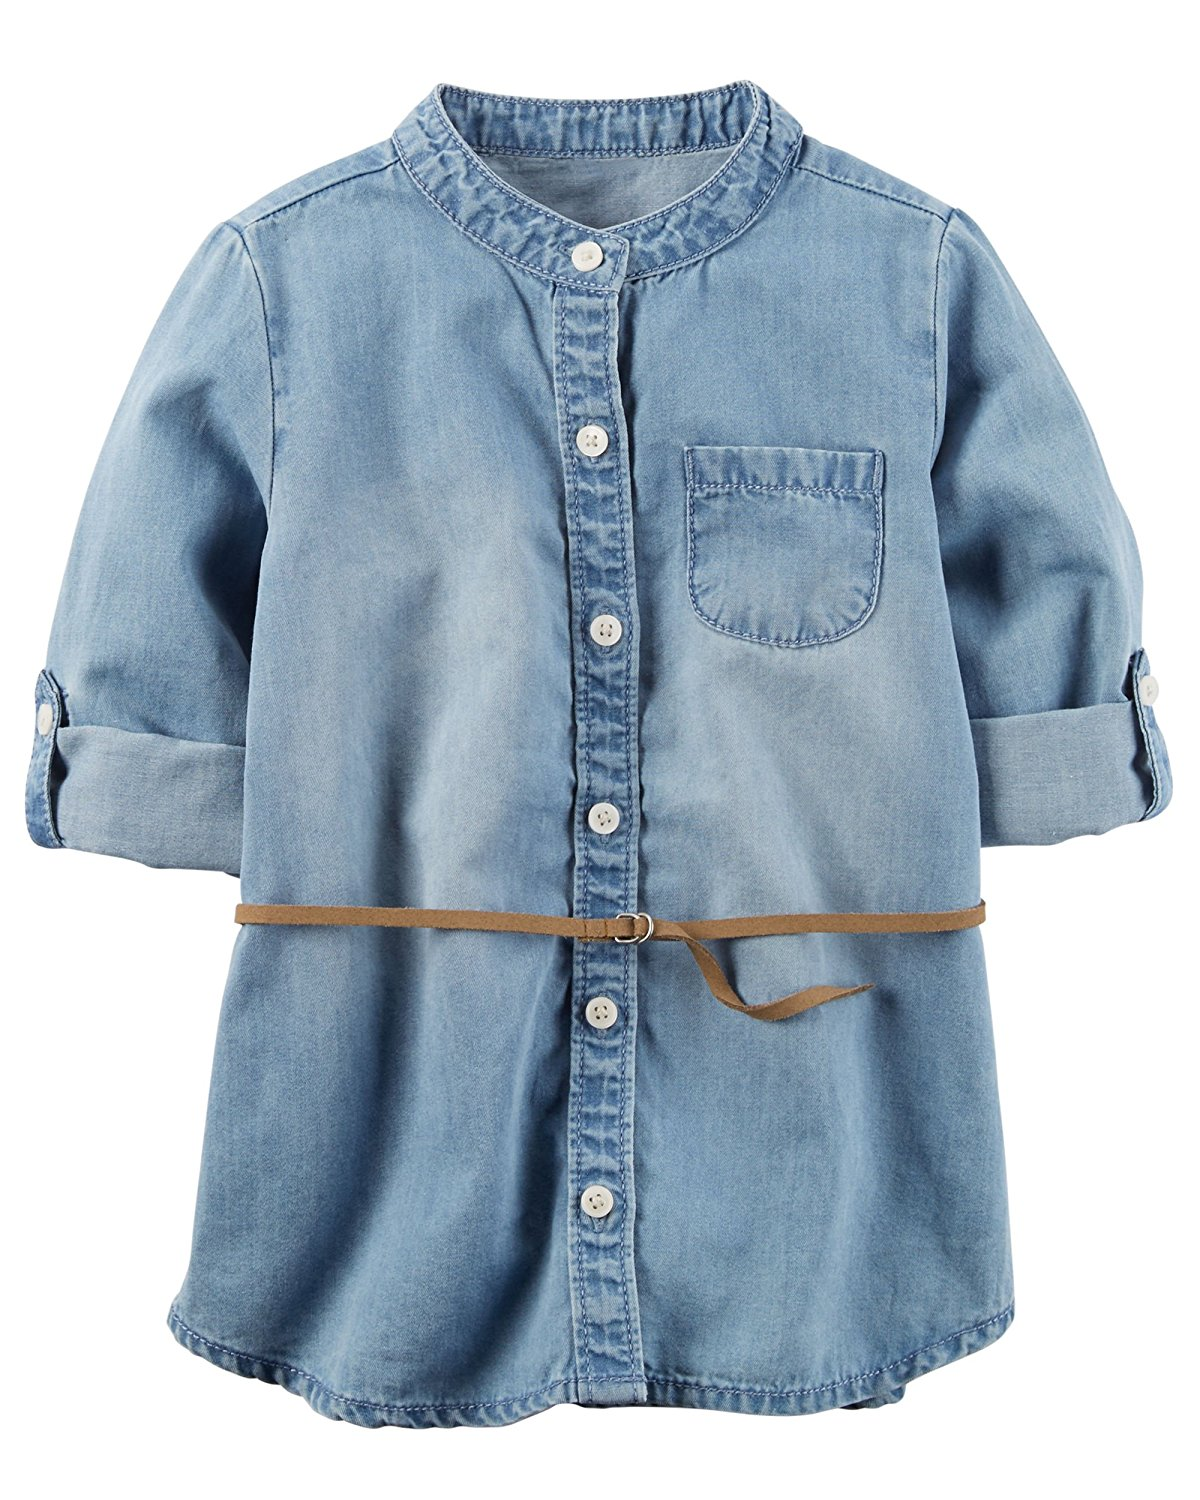 9bcf4adcaf Get Quotations · Carters Toddler Girls Chambray Tunic 5T Blue